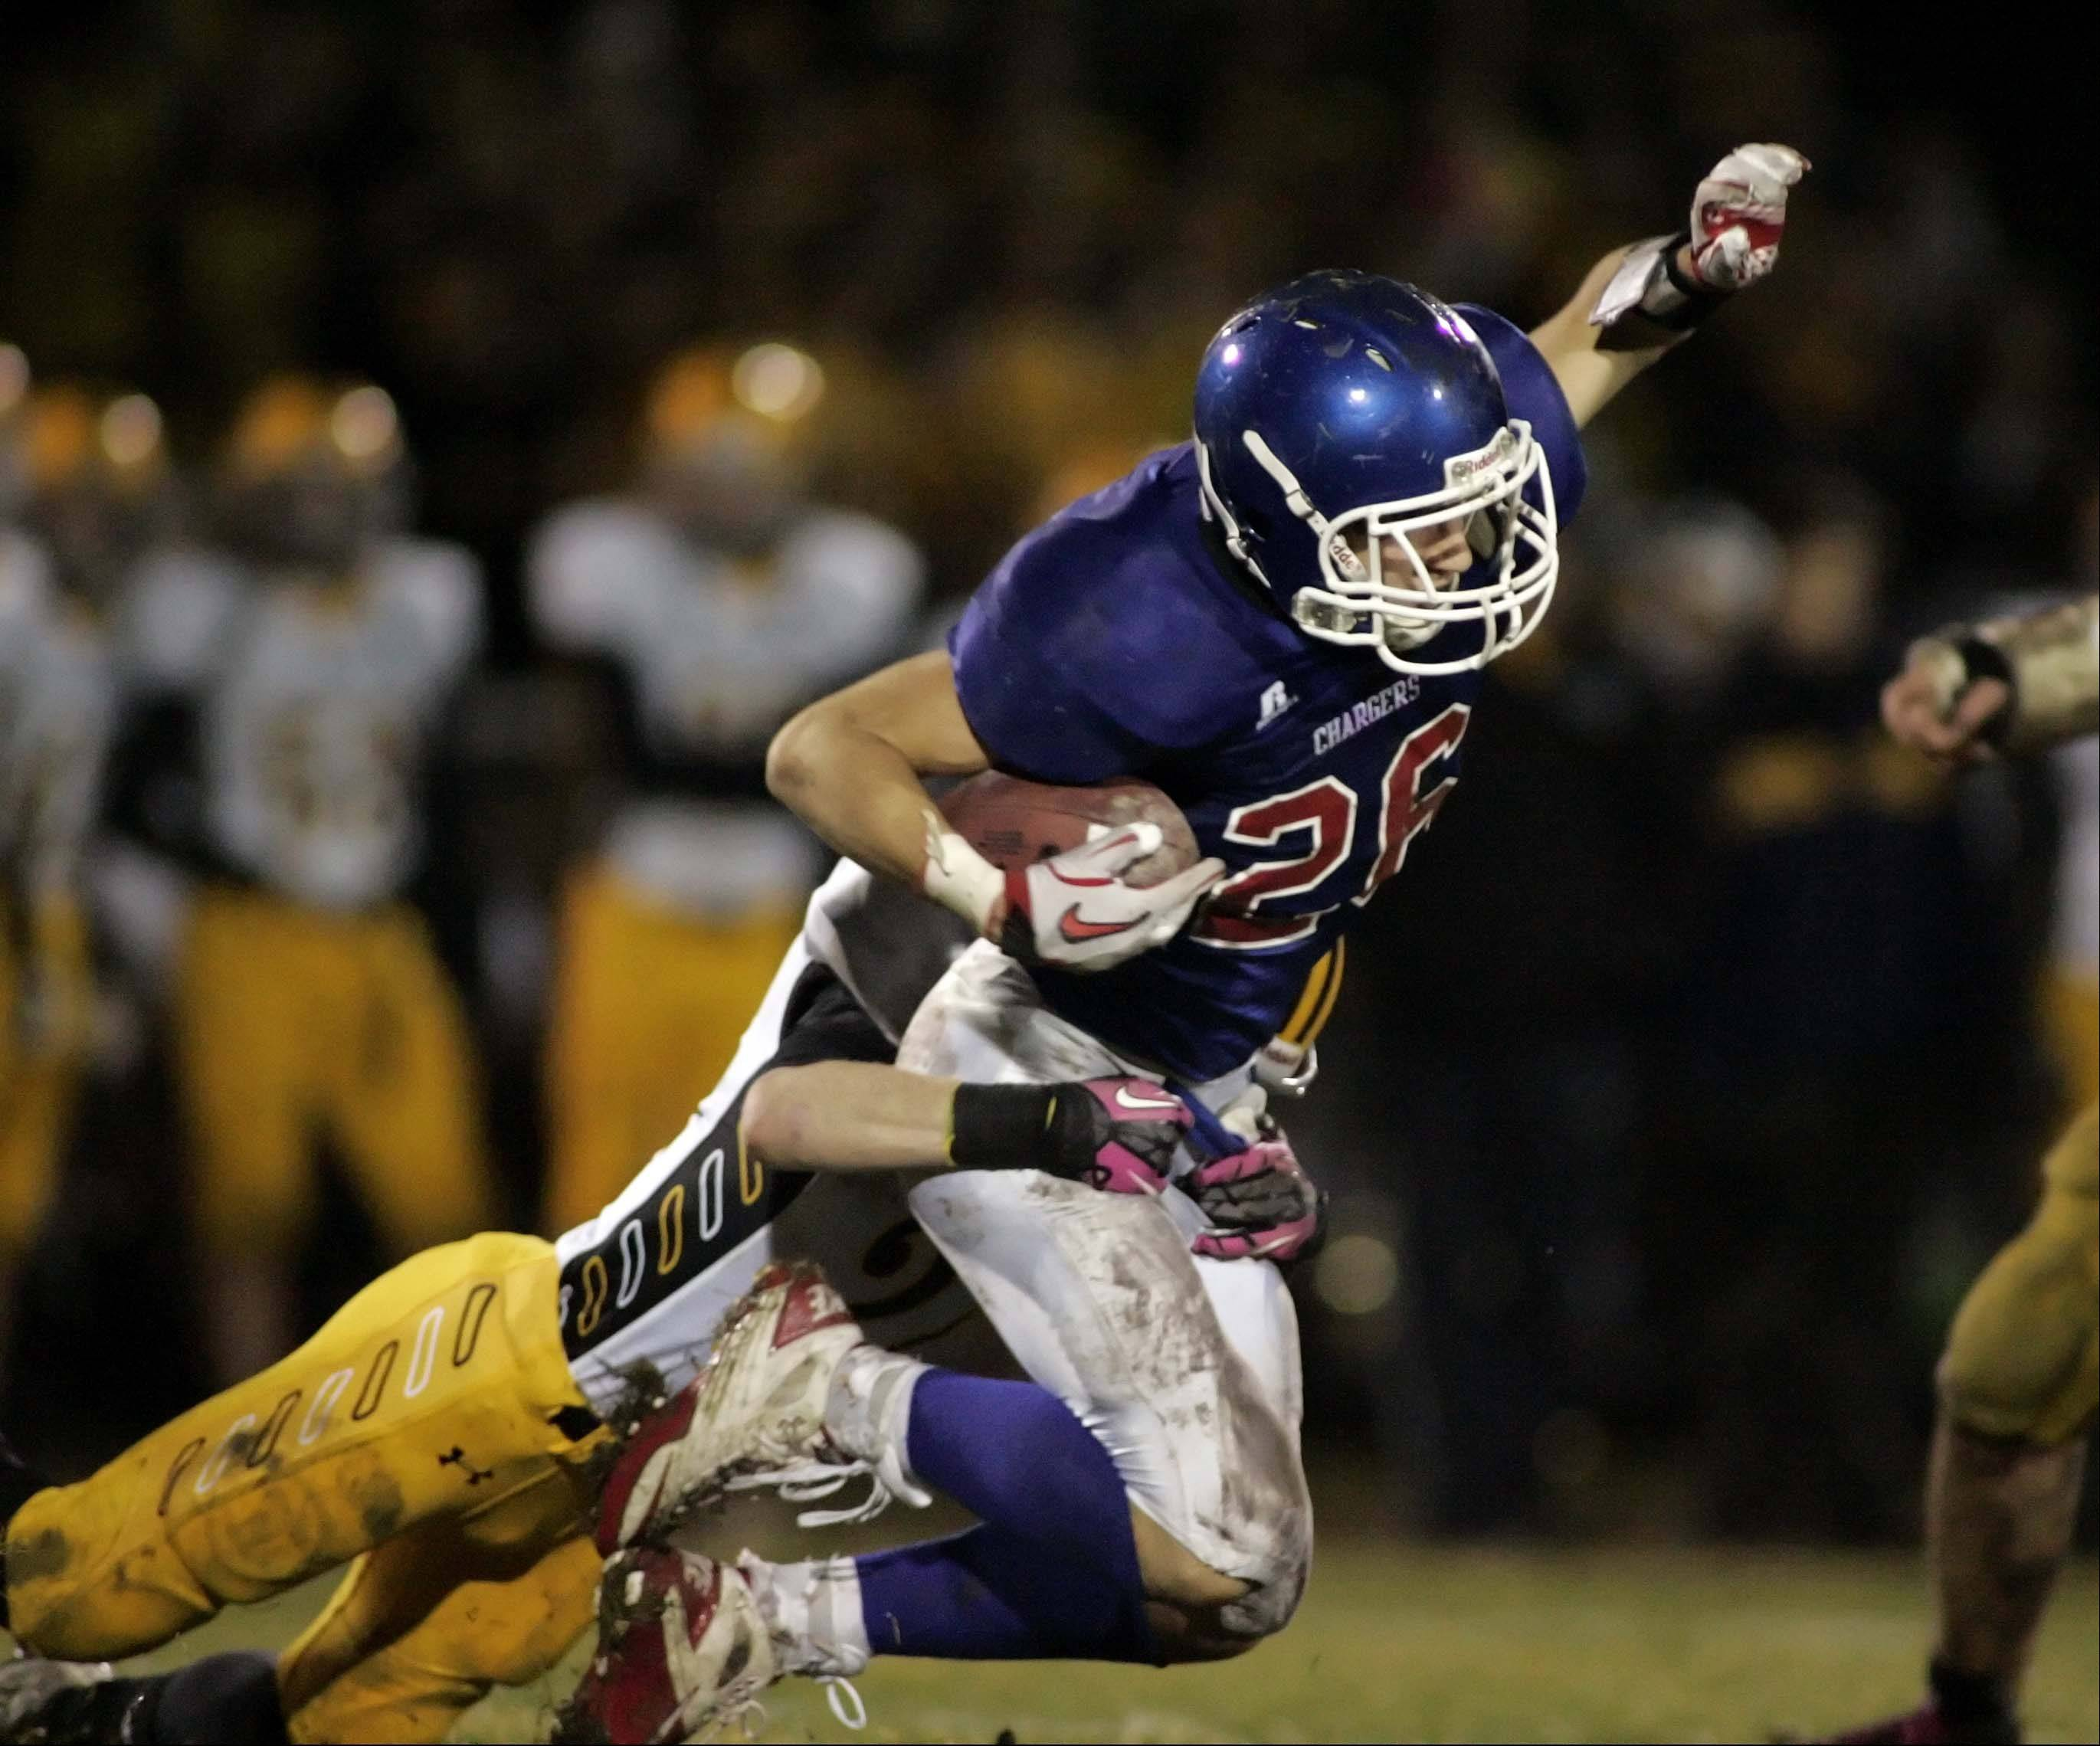 Week Nine - Images from the Jacobs vs. Dundee-Crown football game Friday, October 19, 2012.